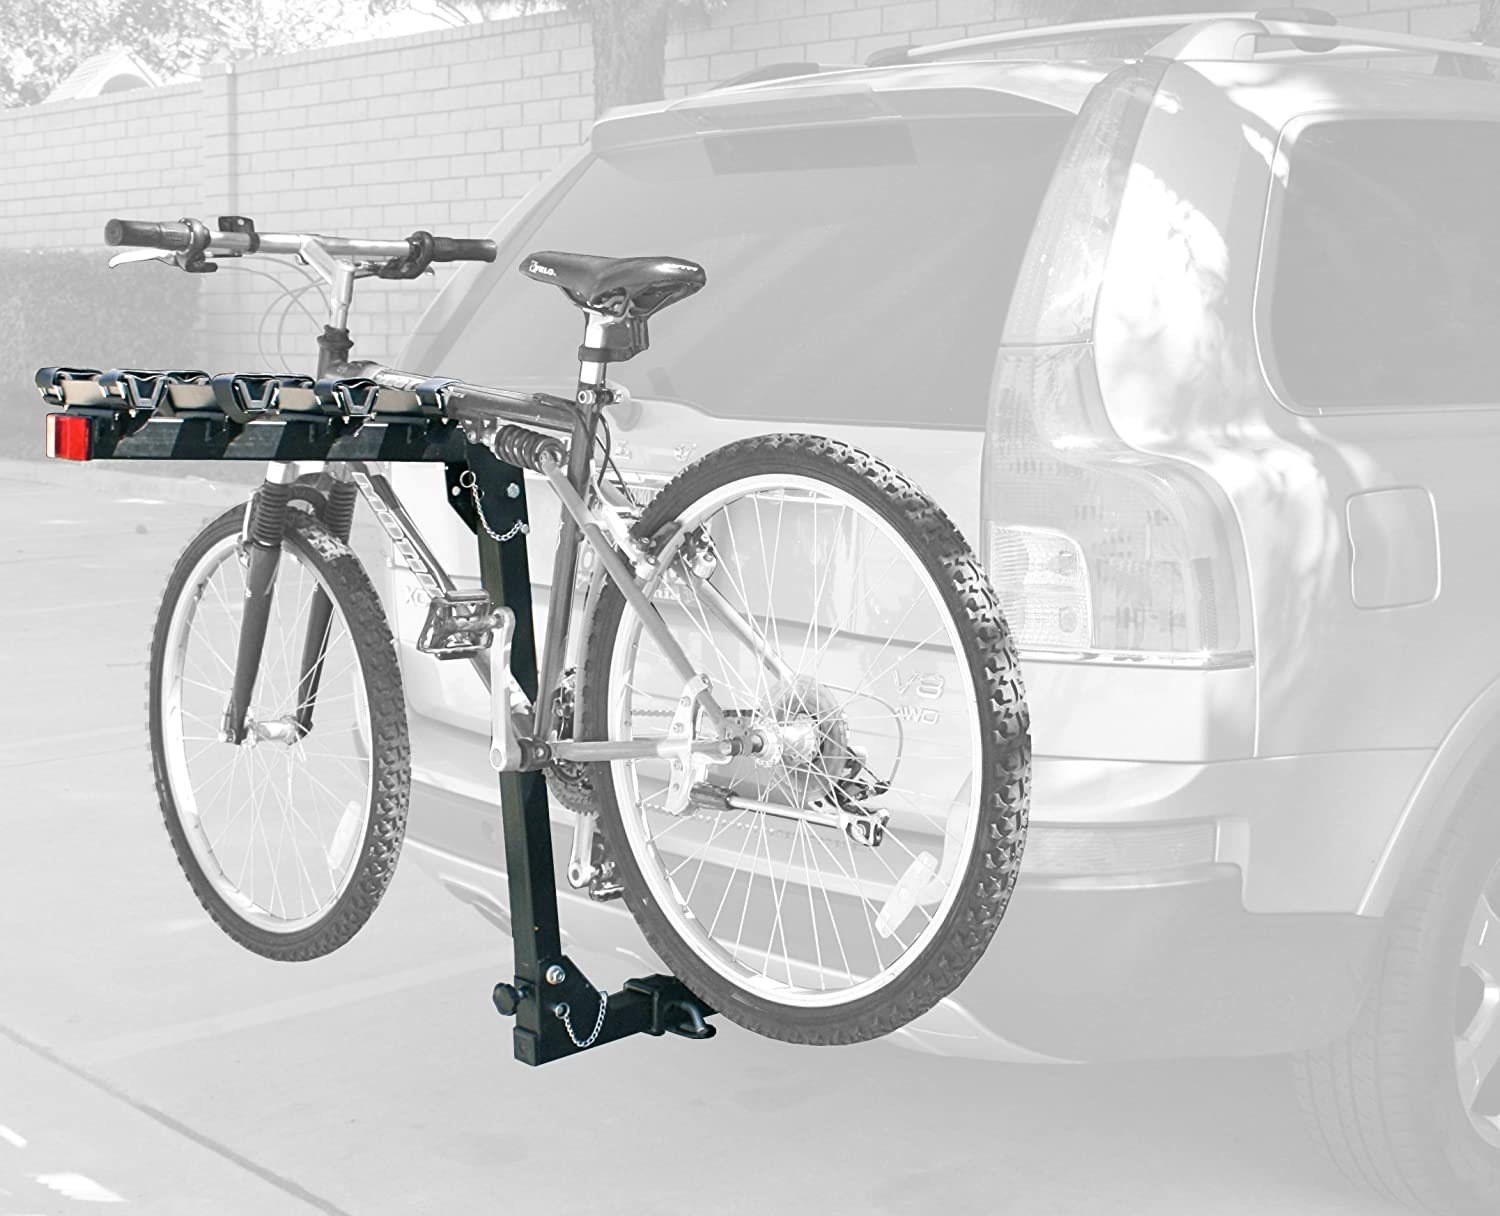 Image of a bike loaded into a bike rack that is mounted on a car's back part.